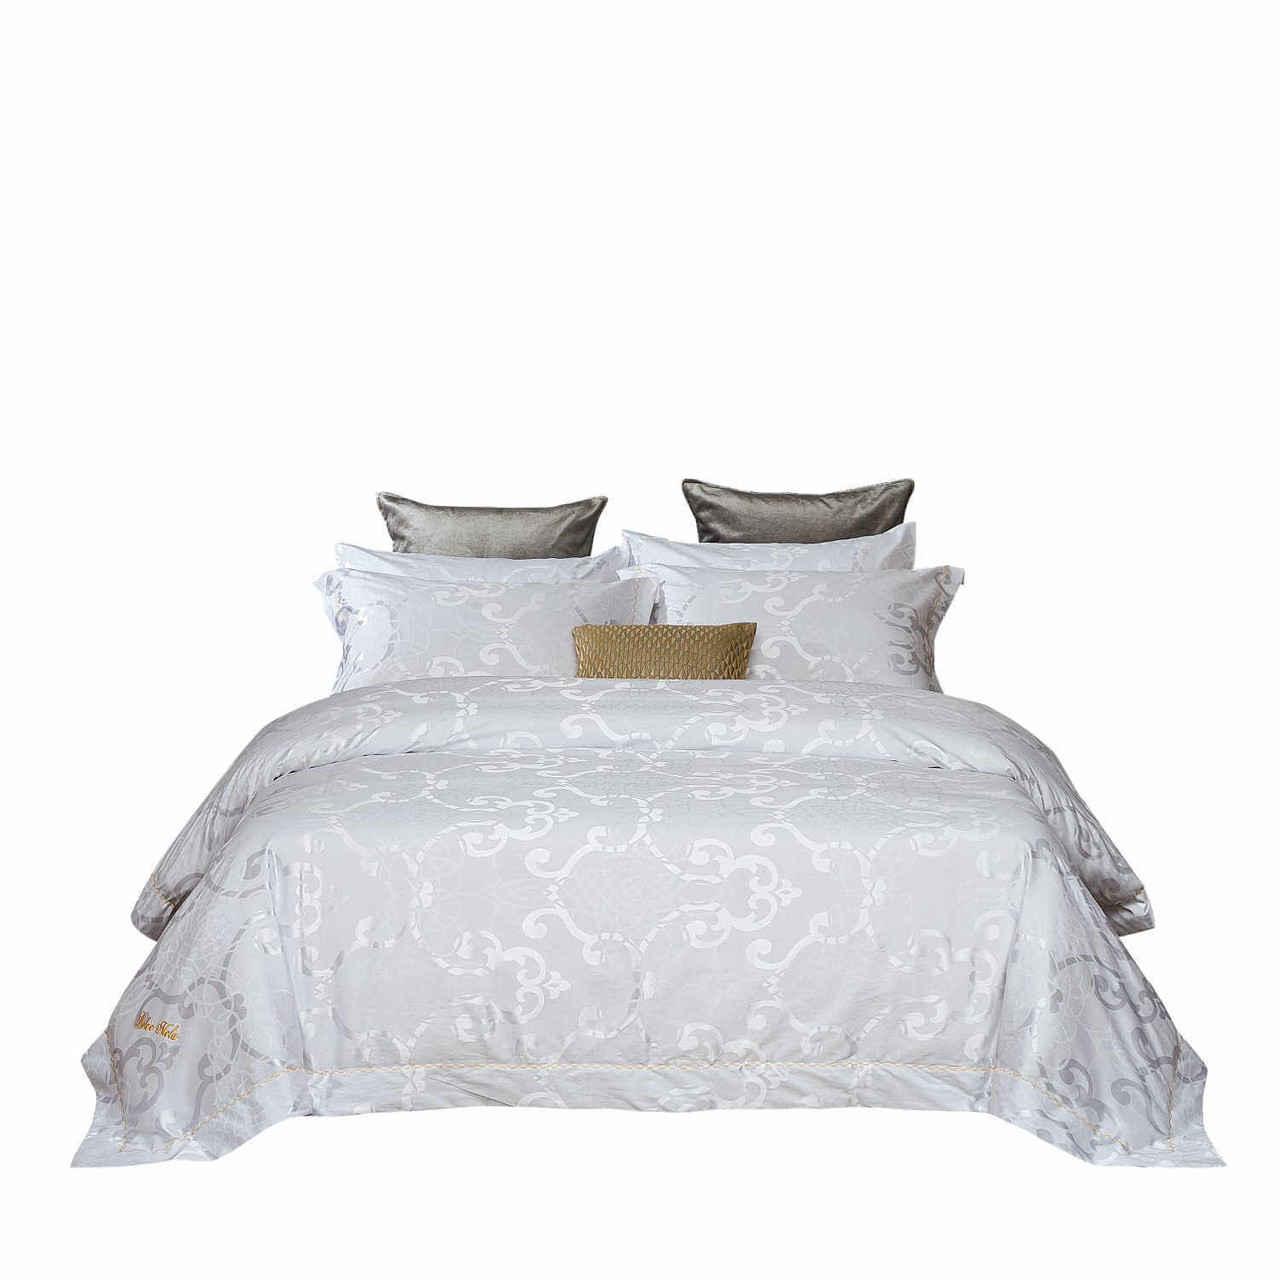 DM806K Dolce-Mela Luxury Bedding Set Wholesale-Dropship